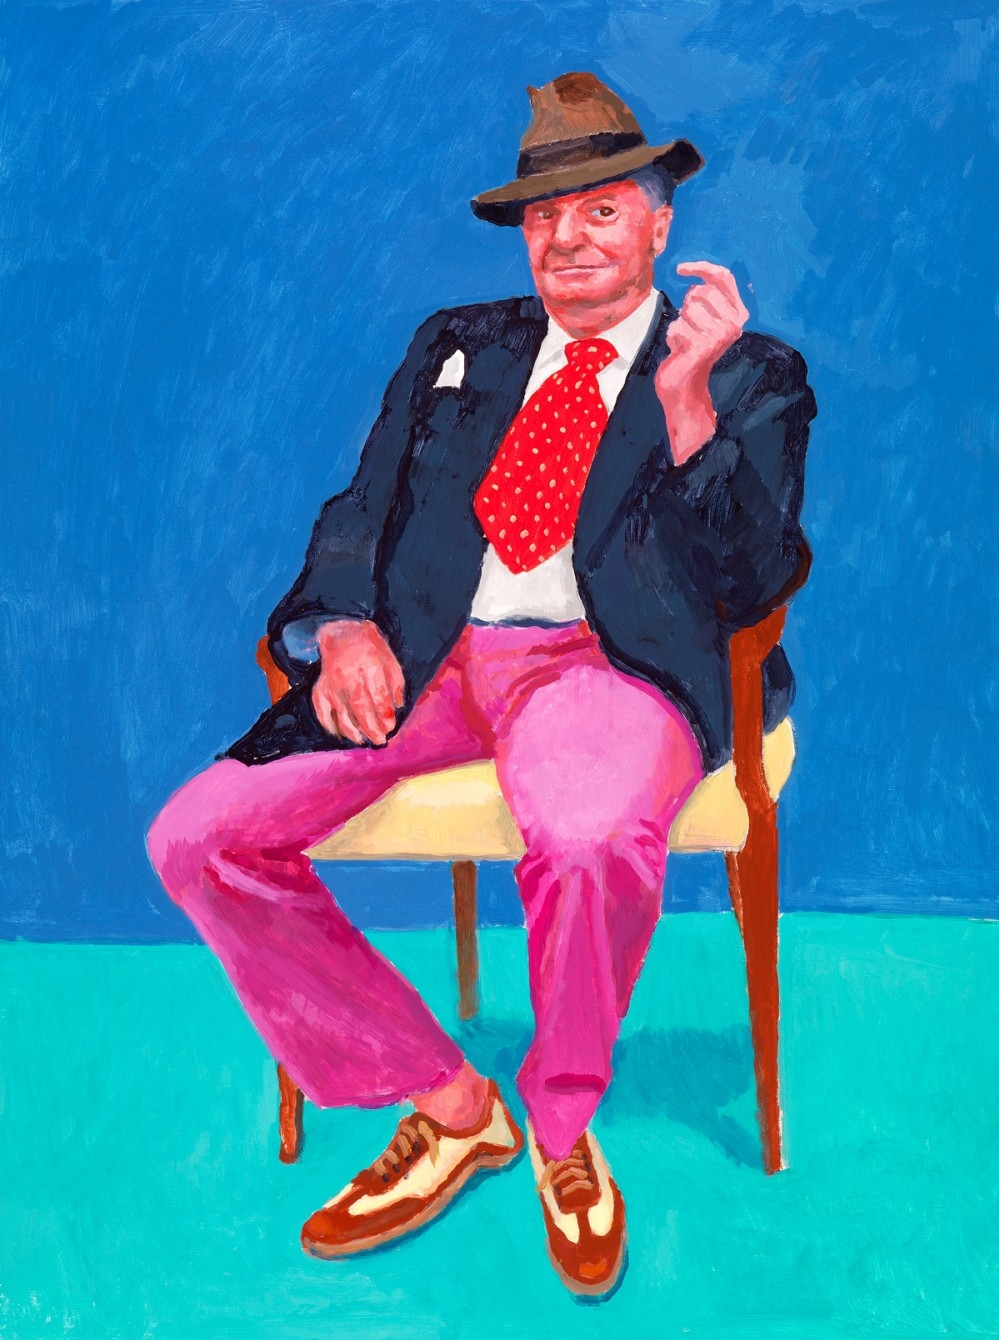 EOS: David Hockney at the Royal Academy of Arts poster, copyright in handen van productiestudio en/of distributeur